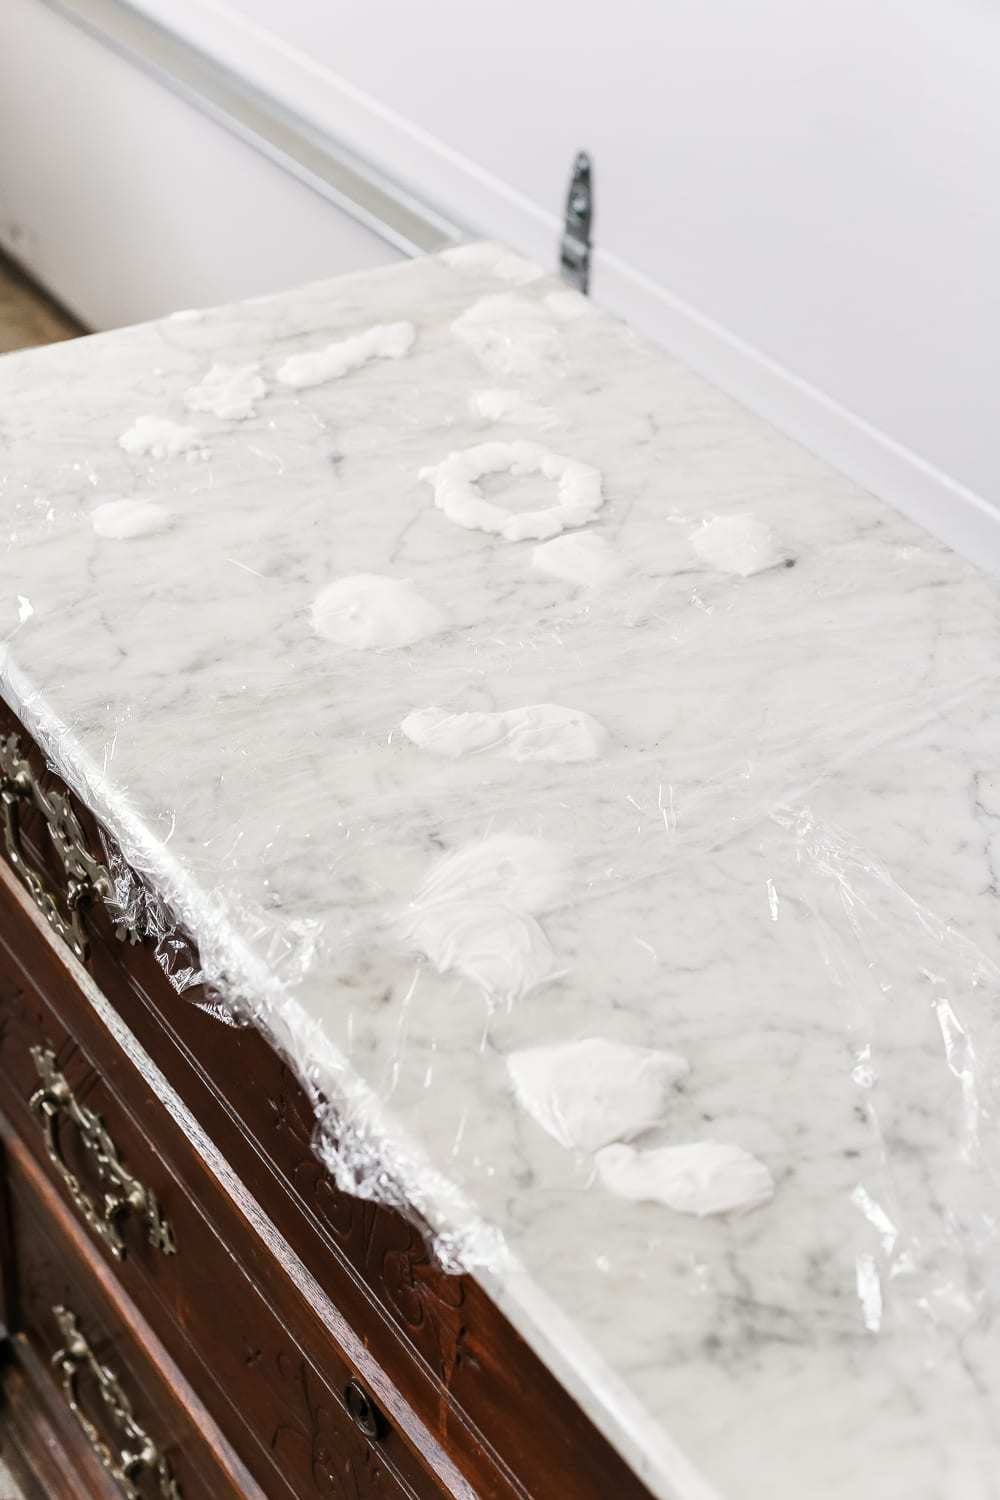 How to remove stains from marble foyer chest makeover blesser how to remove stains from marble foyer chest makeover blesserhouse a dailygadgetfo Choice Image